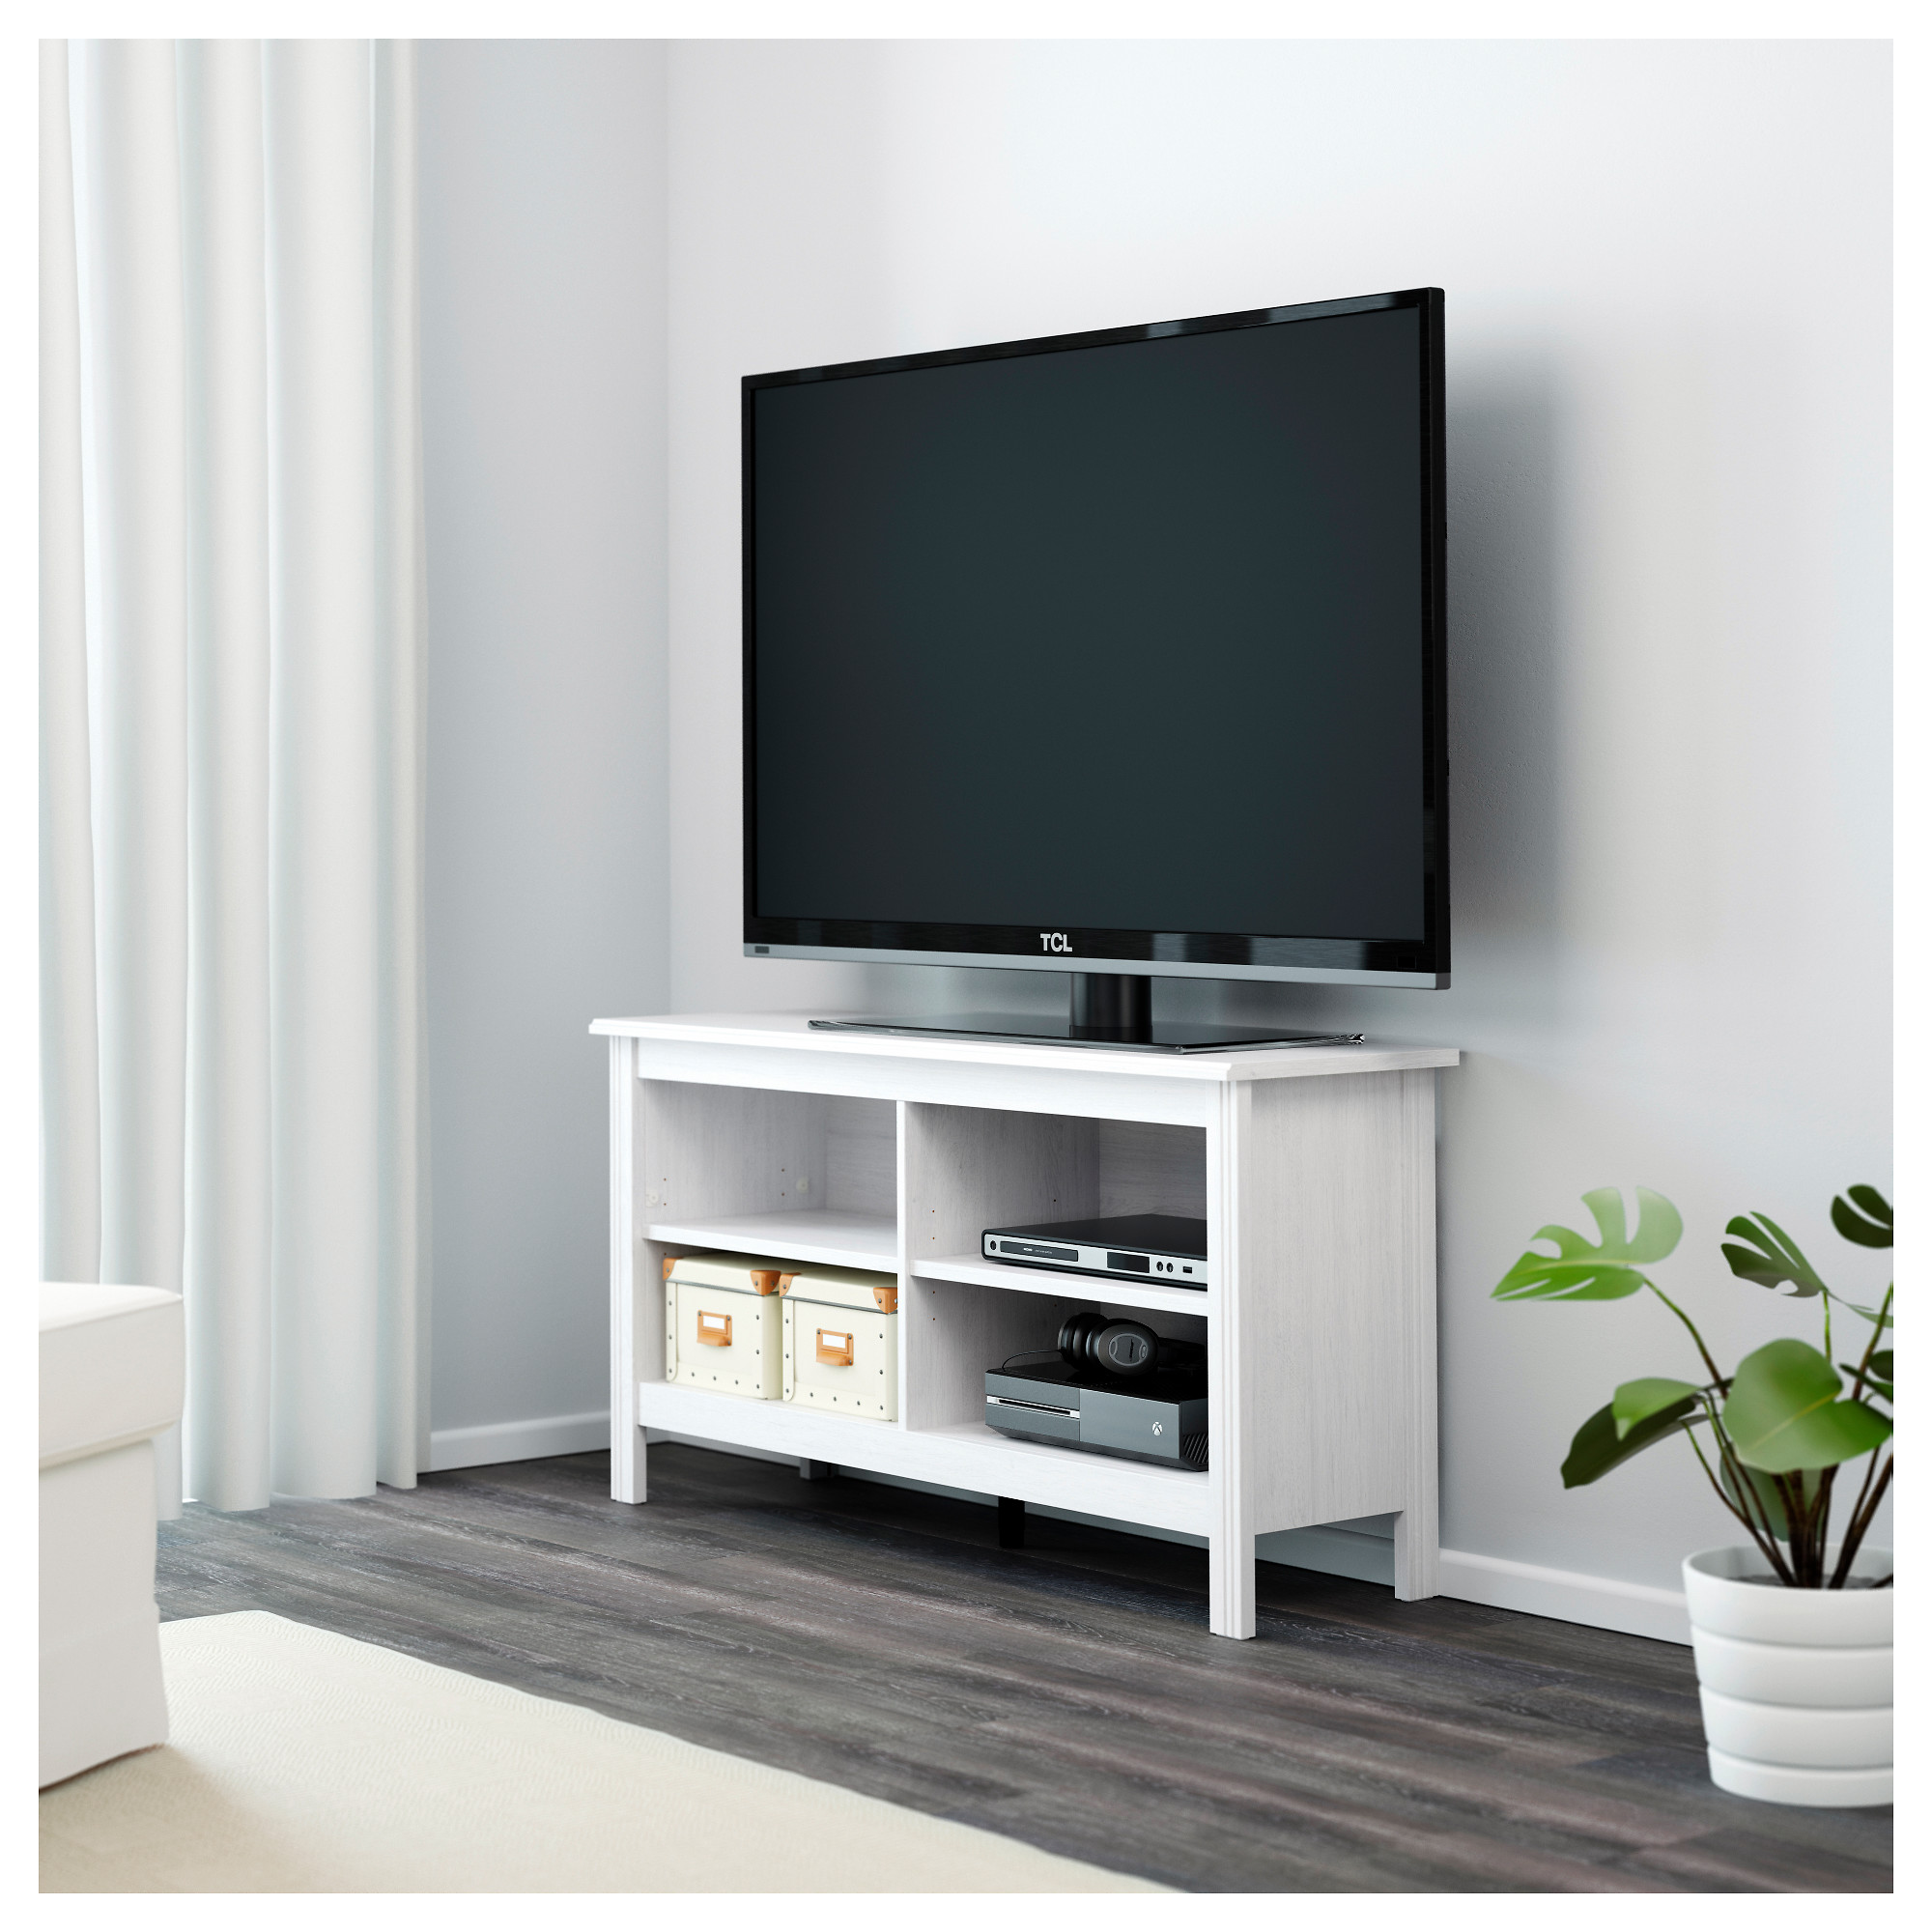 brusali tv unit white ikea - Media Stand Ikea